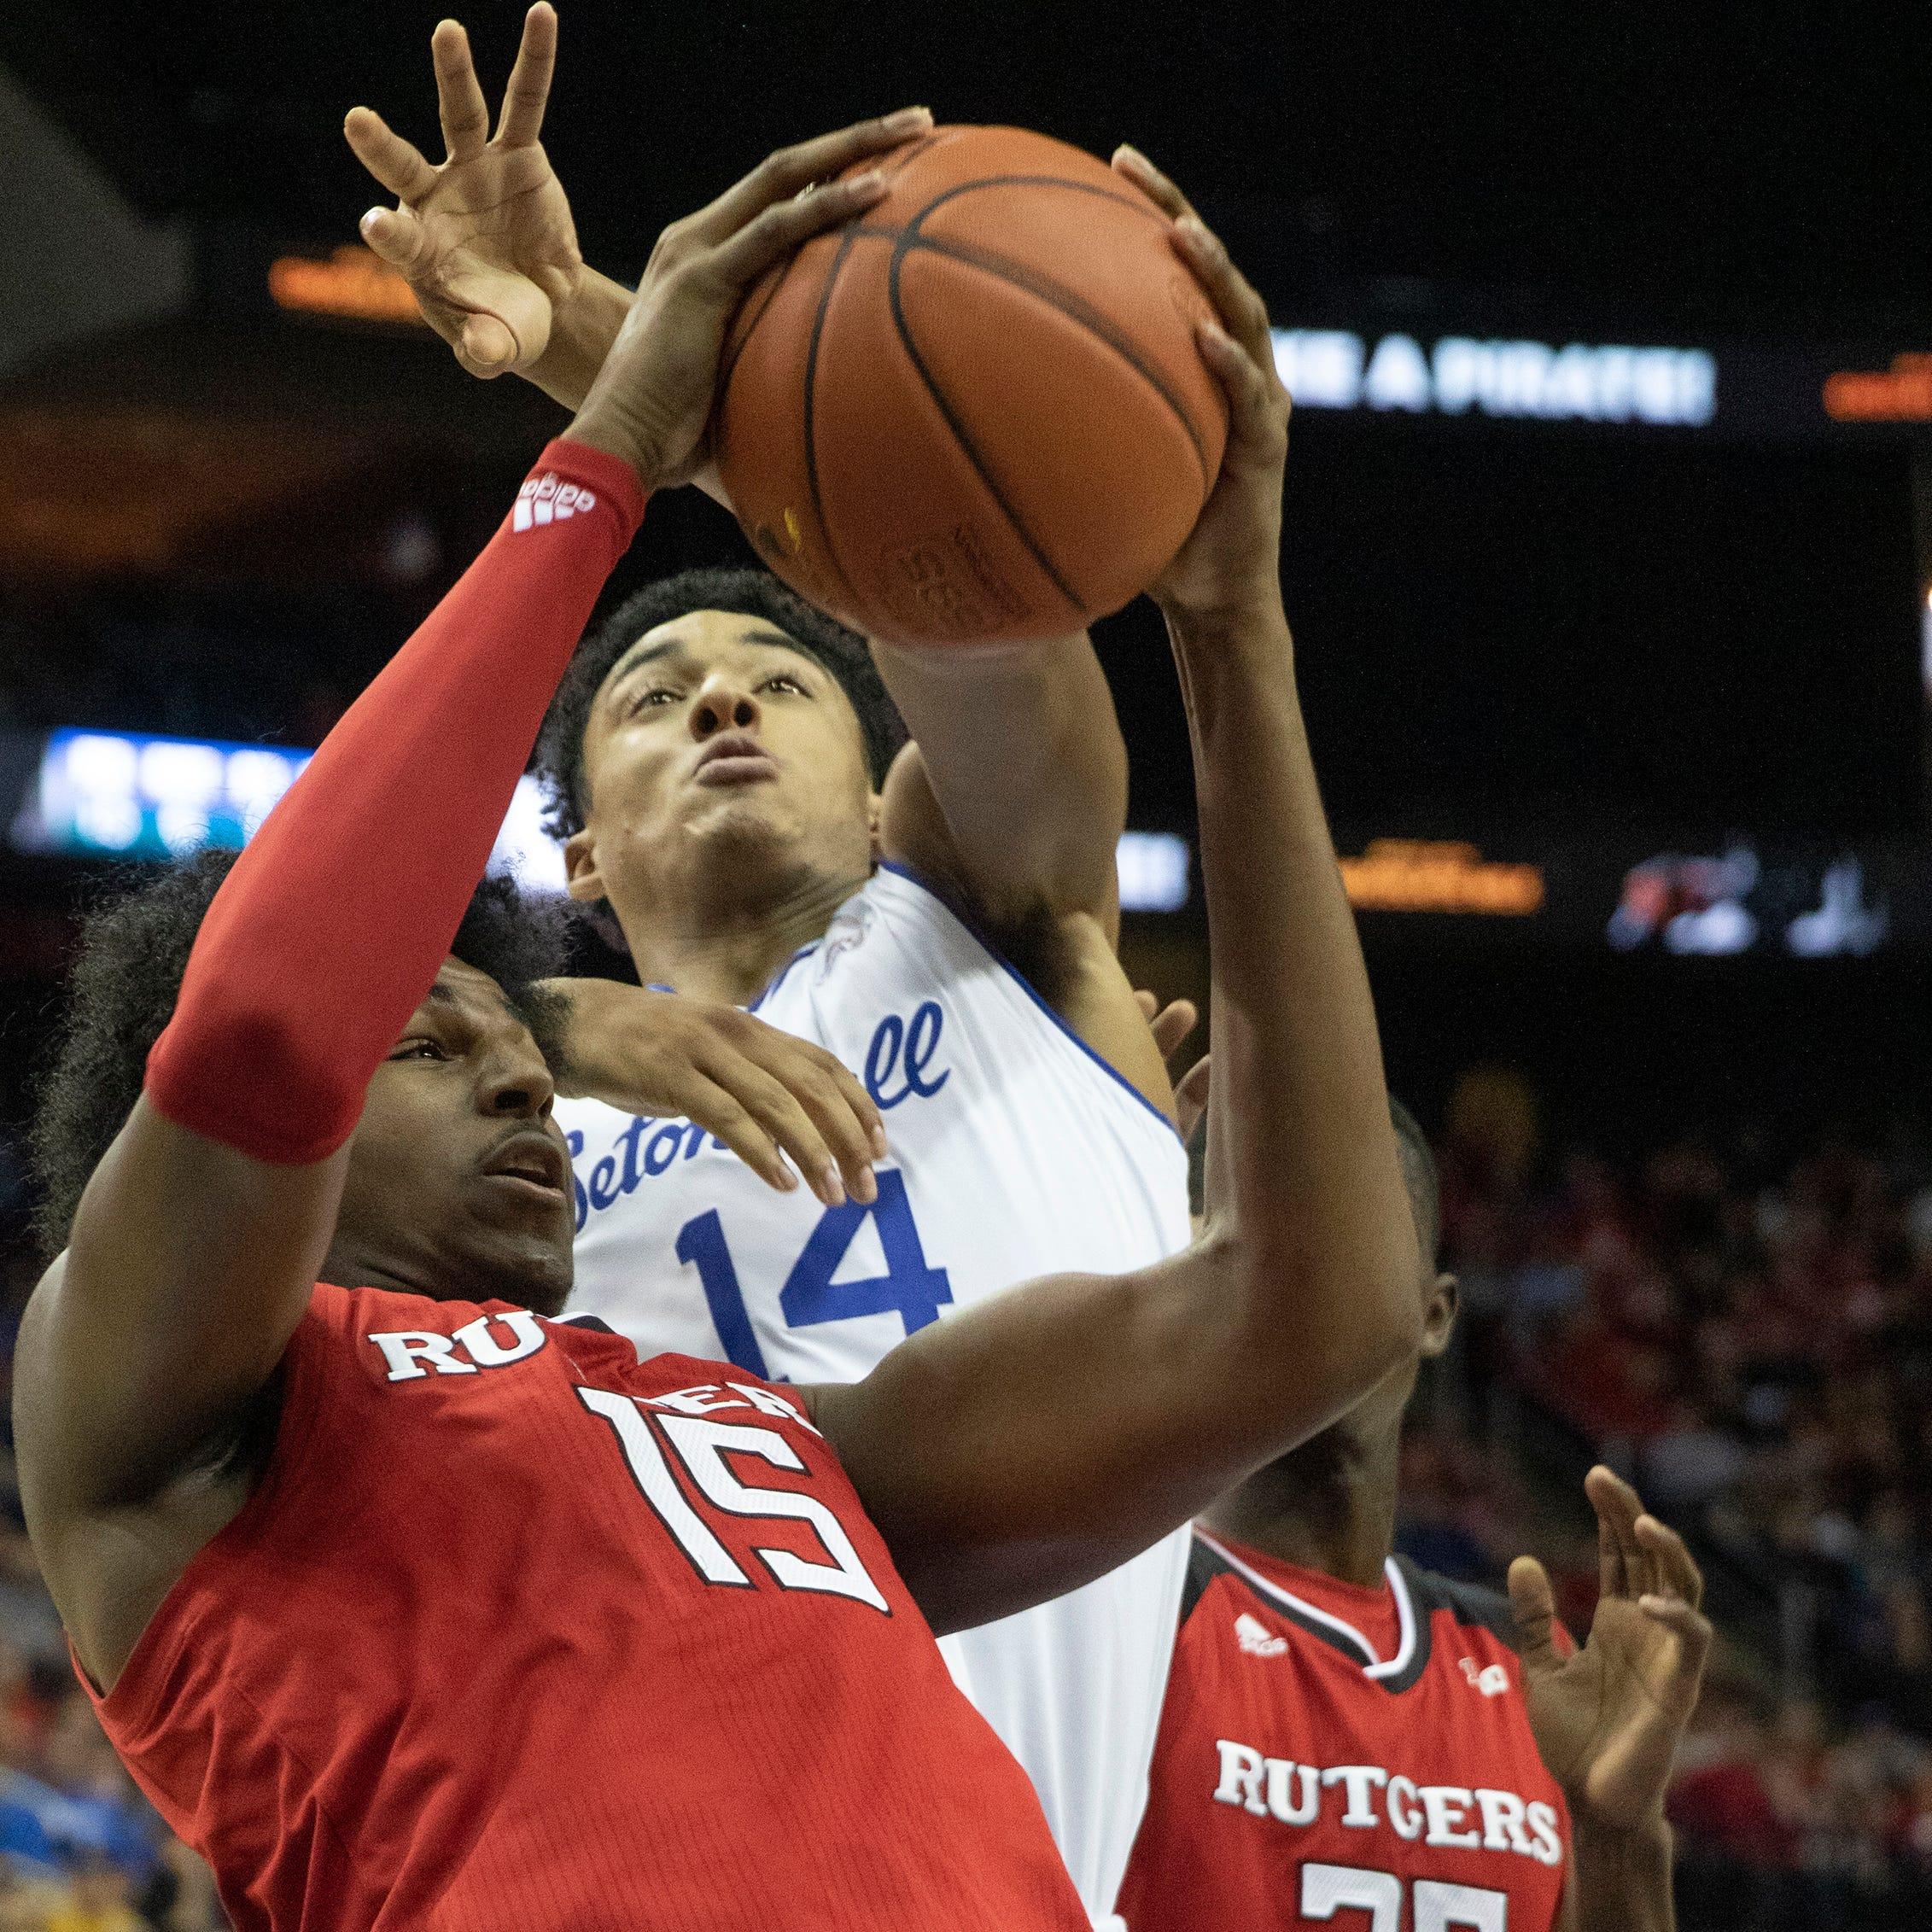 Rutgers-Seton Hall: Pirates avoid letdown against Scarlet Knights